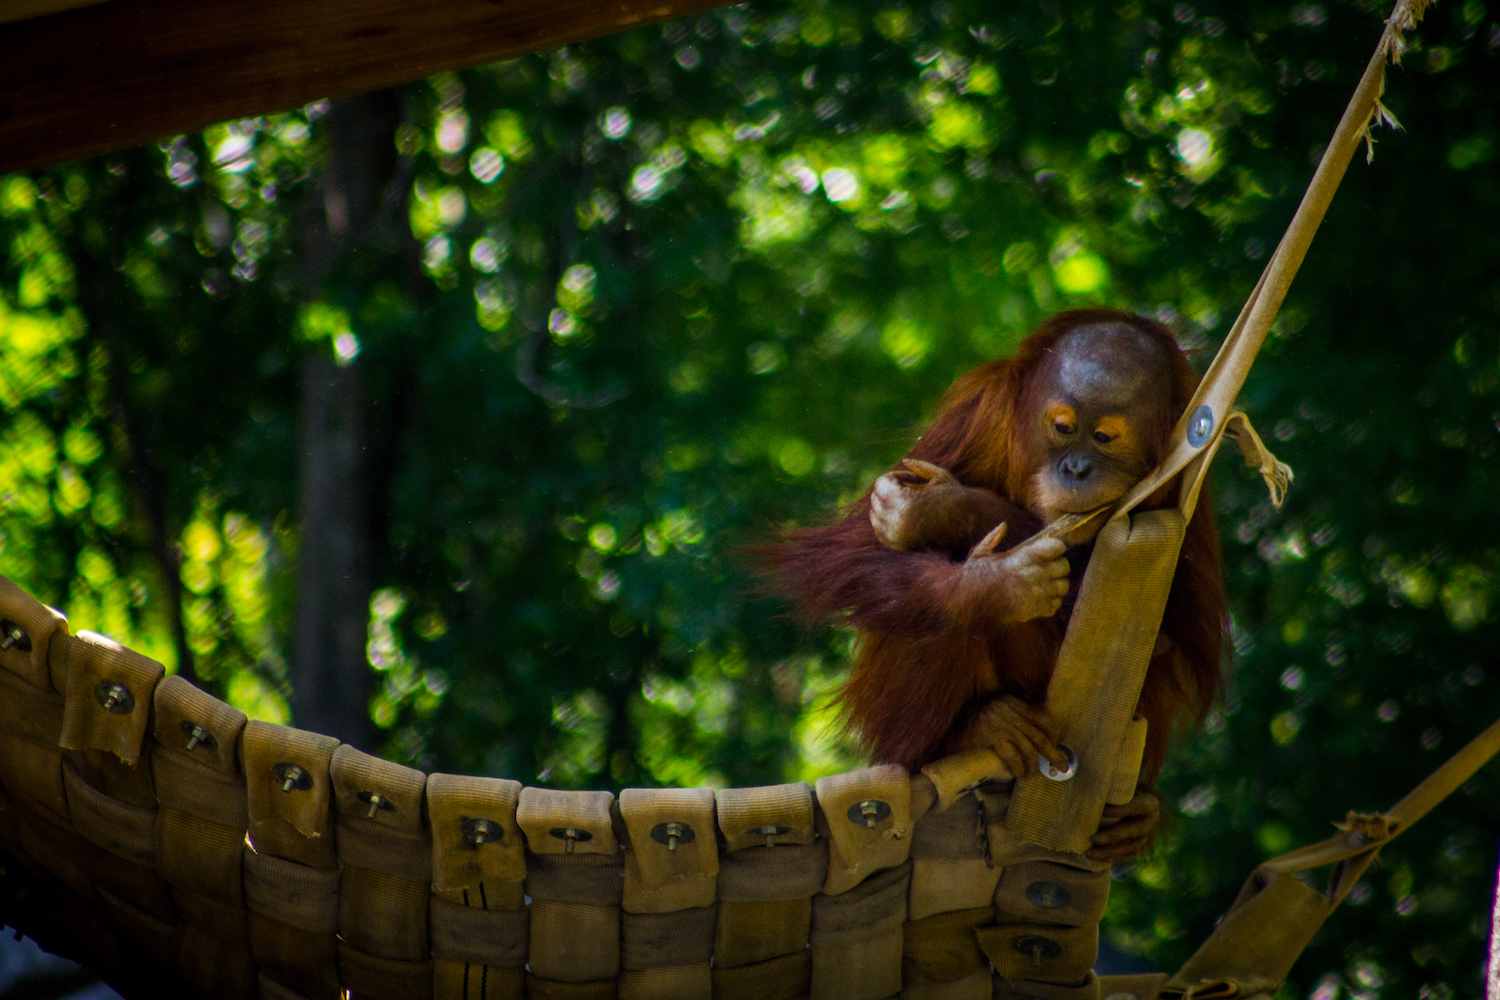 Young Orangutan, Atlanta Zoo, Canon DSLR